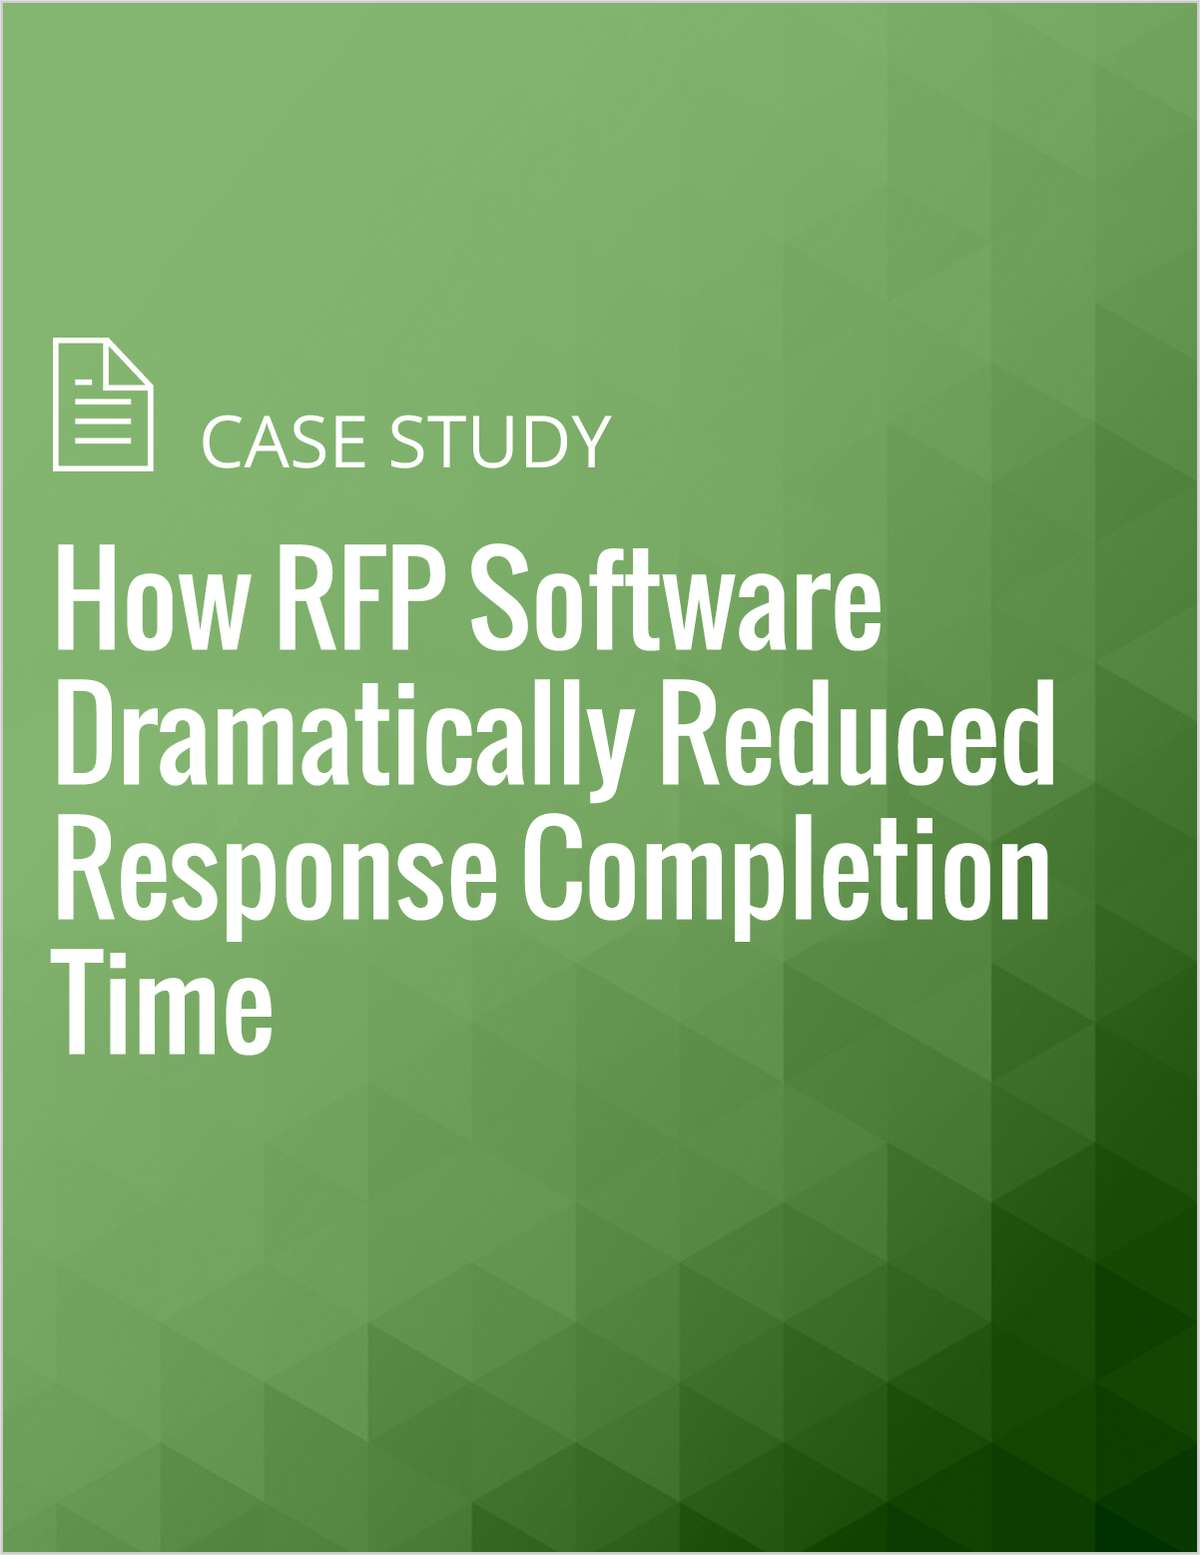 How RFP Software Dramatically Reduced Response Completion